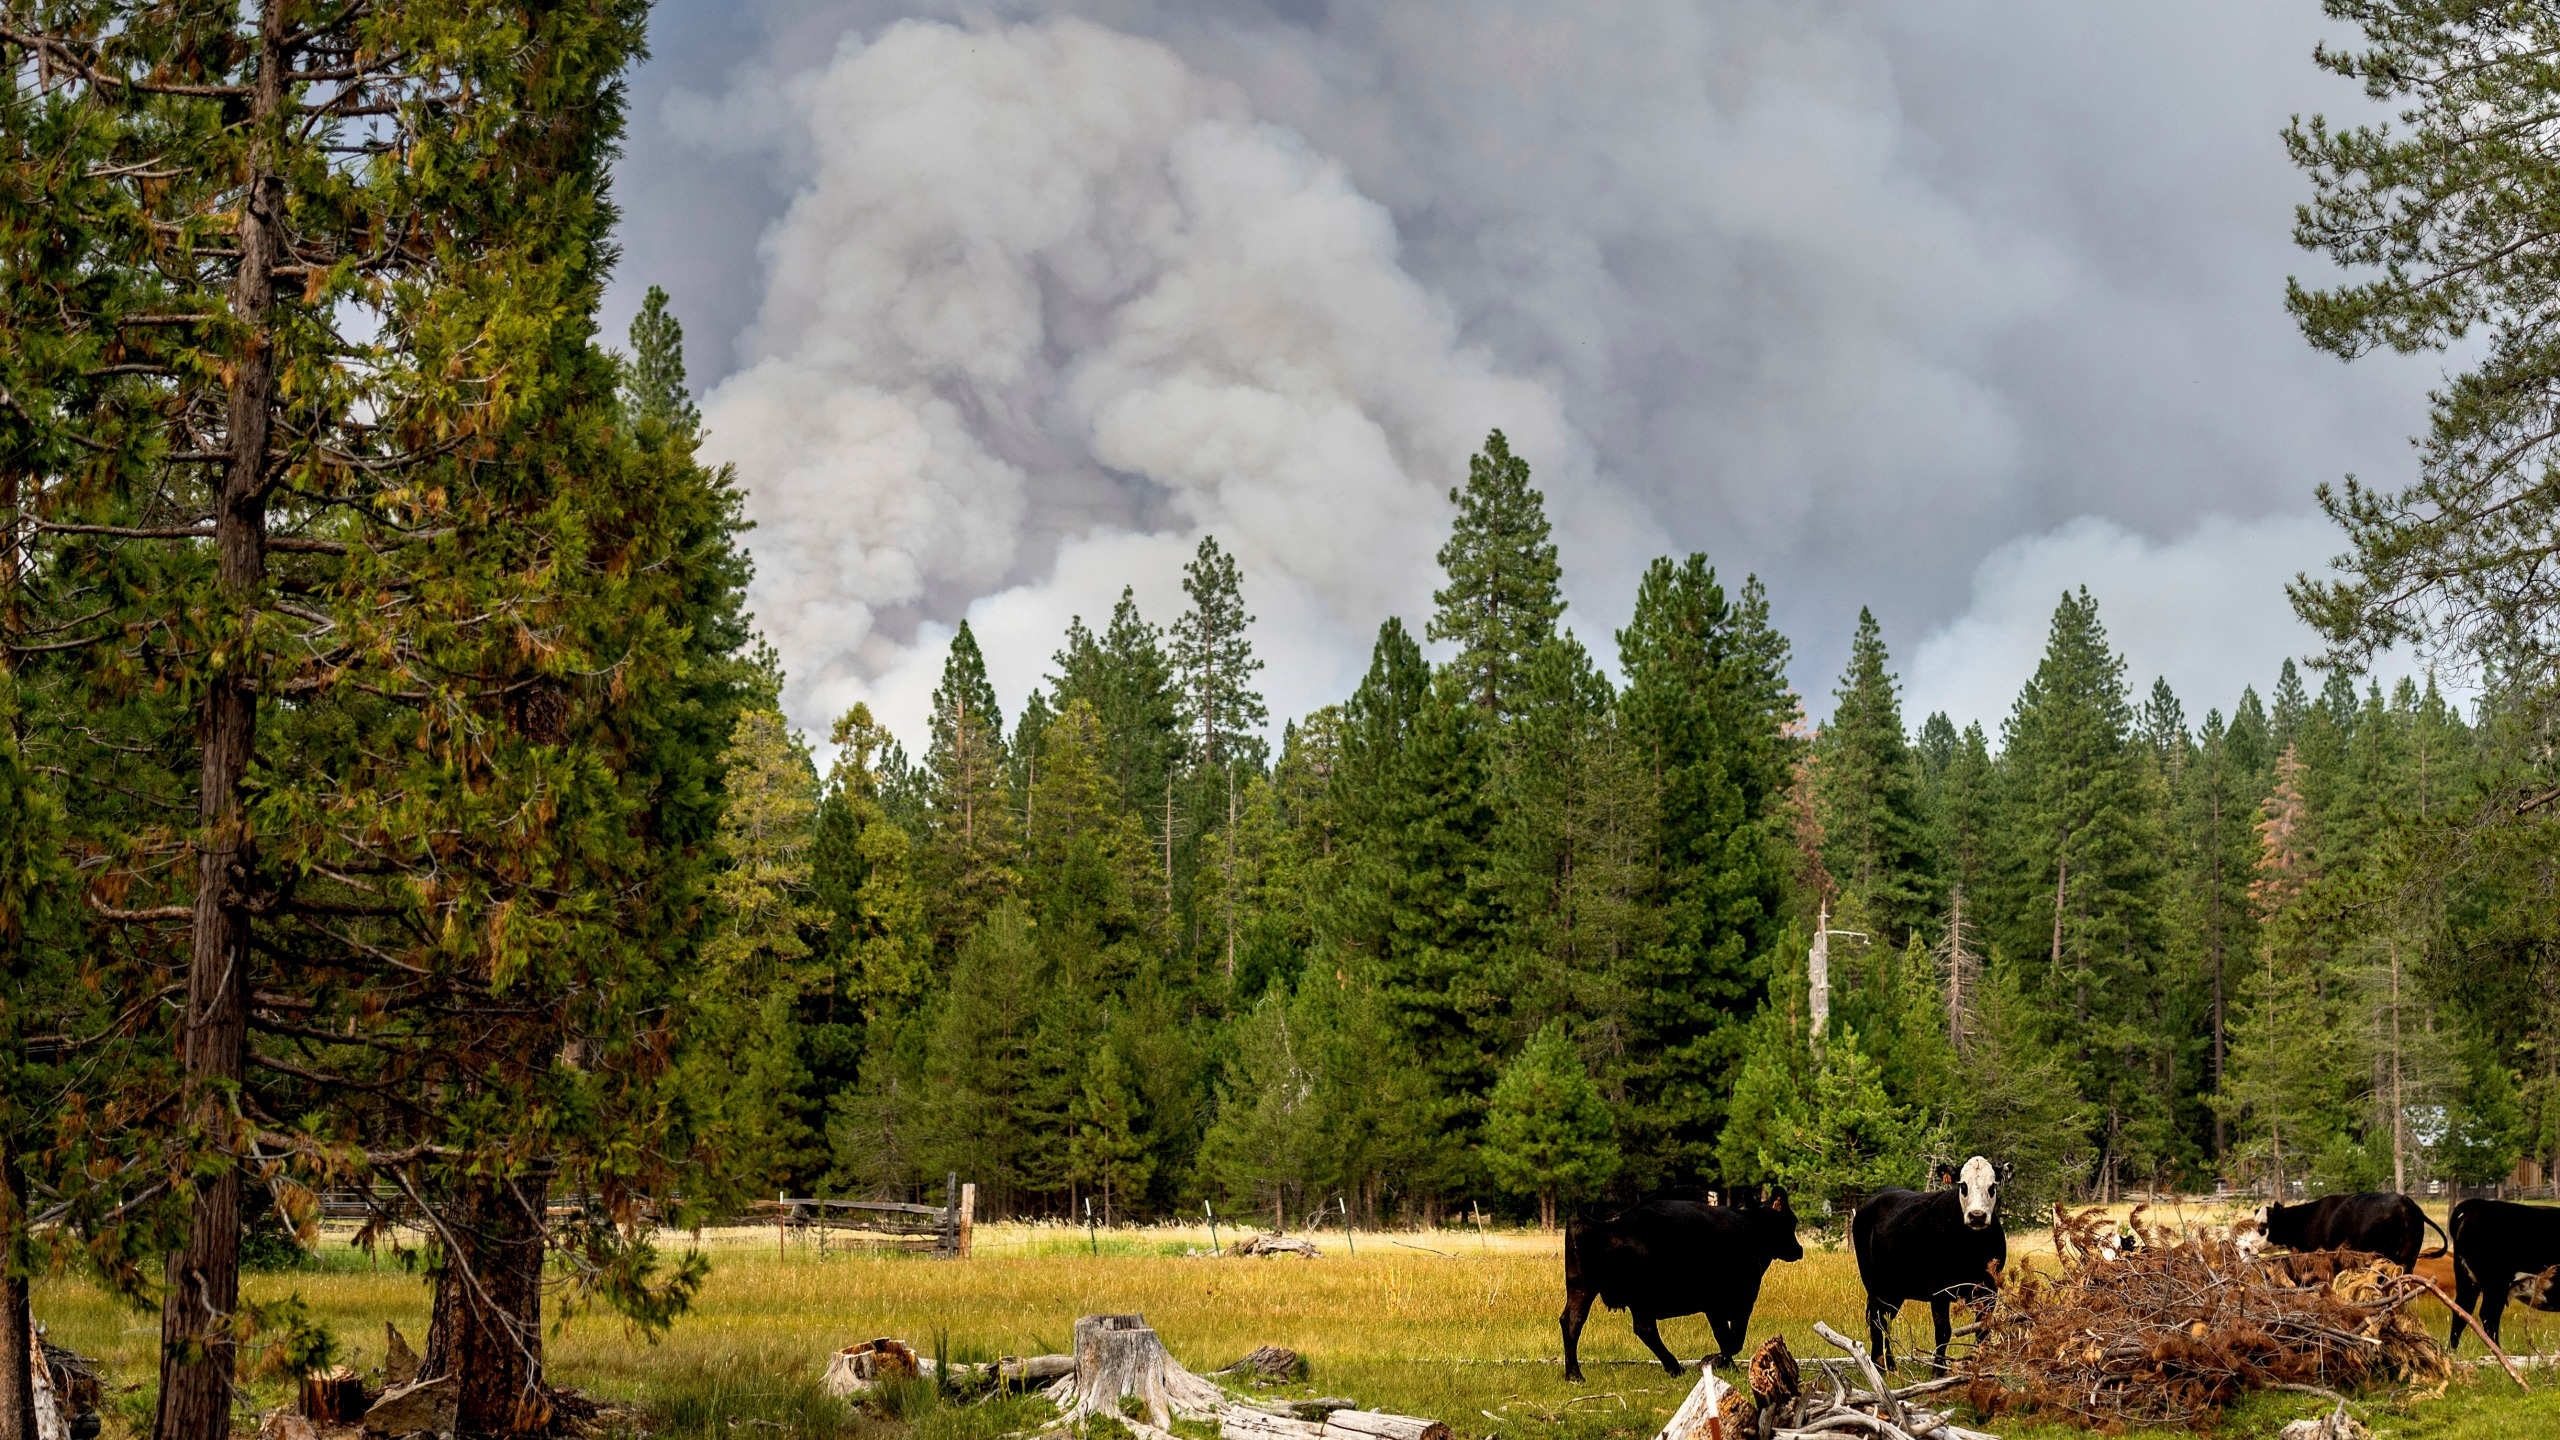 In this Monday, July 26, 2021, file photo, cows graze as smoke rises from the Dixie Fire burning in Lassen National Forest, near Jonesville, Calif. A historic drought and recent heat waves tied to climate change have made wildfires harder to fight in the American West. (AP Photo/Noah Berger, File)